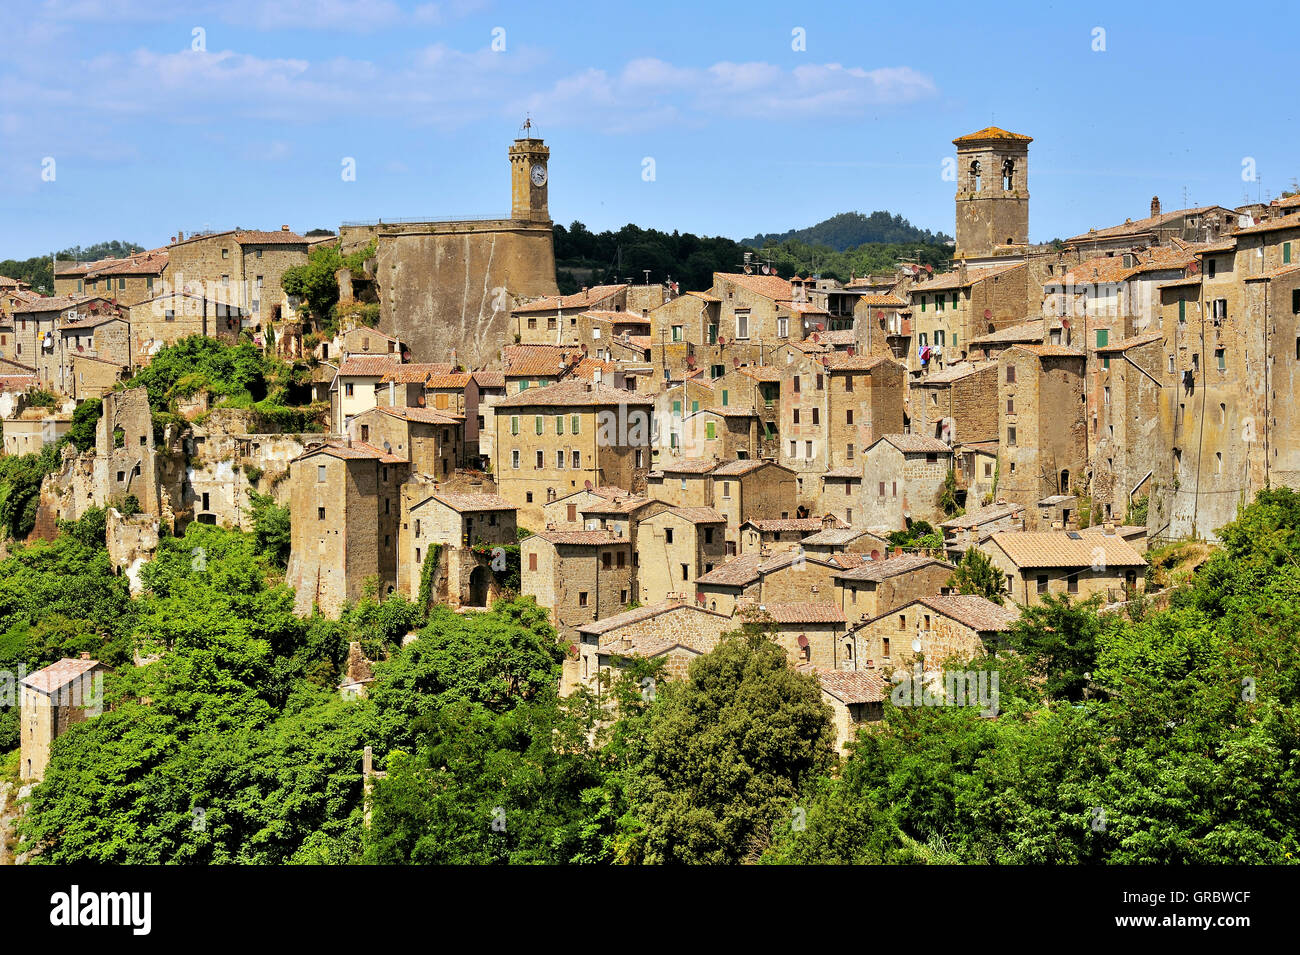 Sorano, Town Of The Middle Ages, Province Grosseto In Tuscany, Buildings Of Tuff Stone, Tuscany, Italy - Stock Image